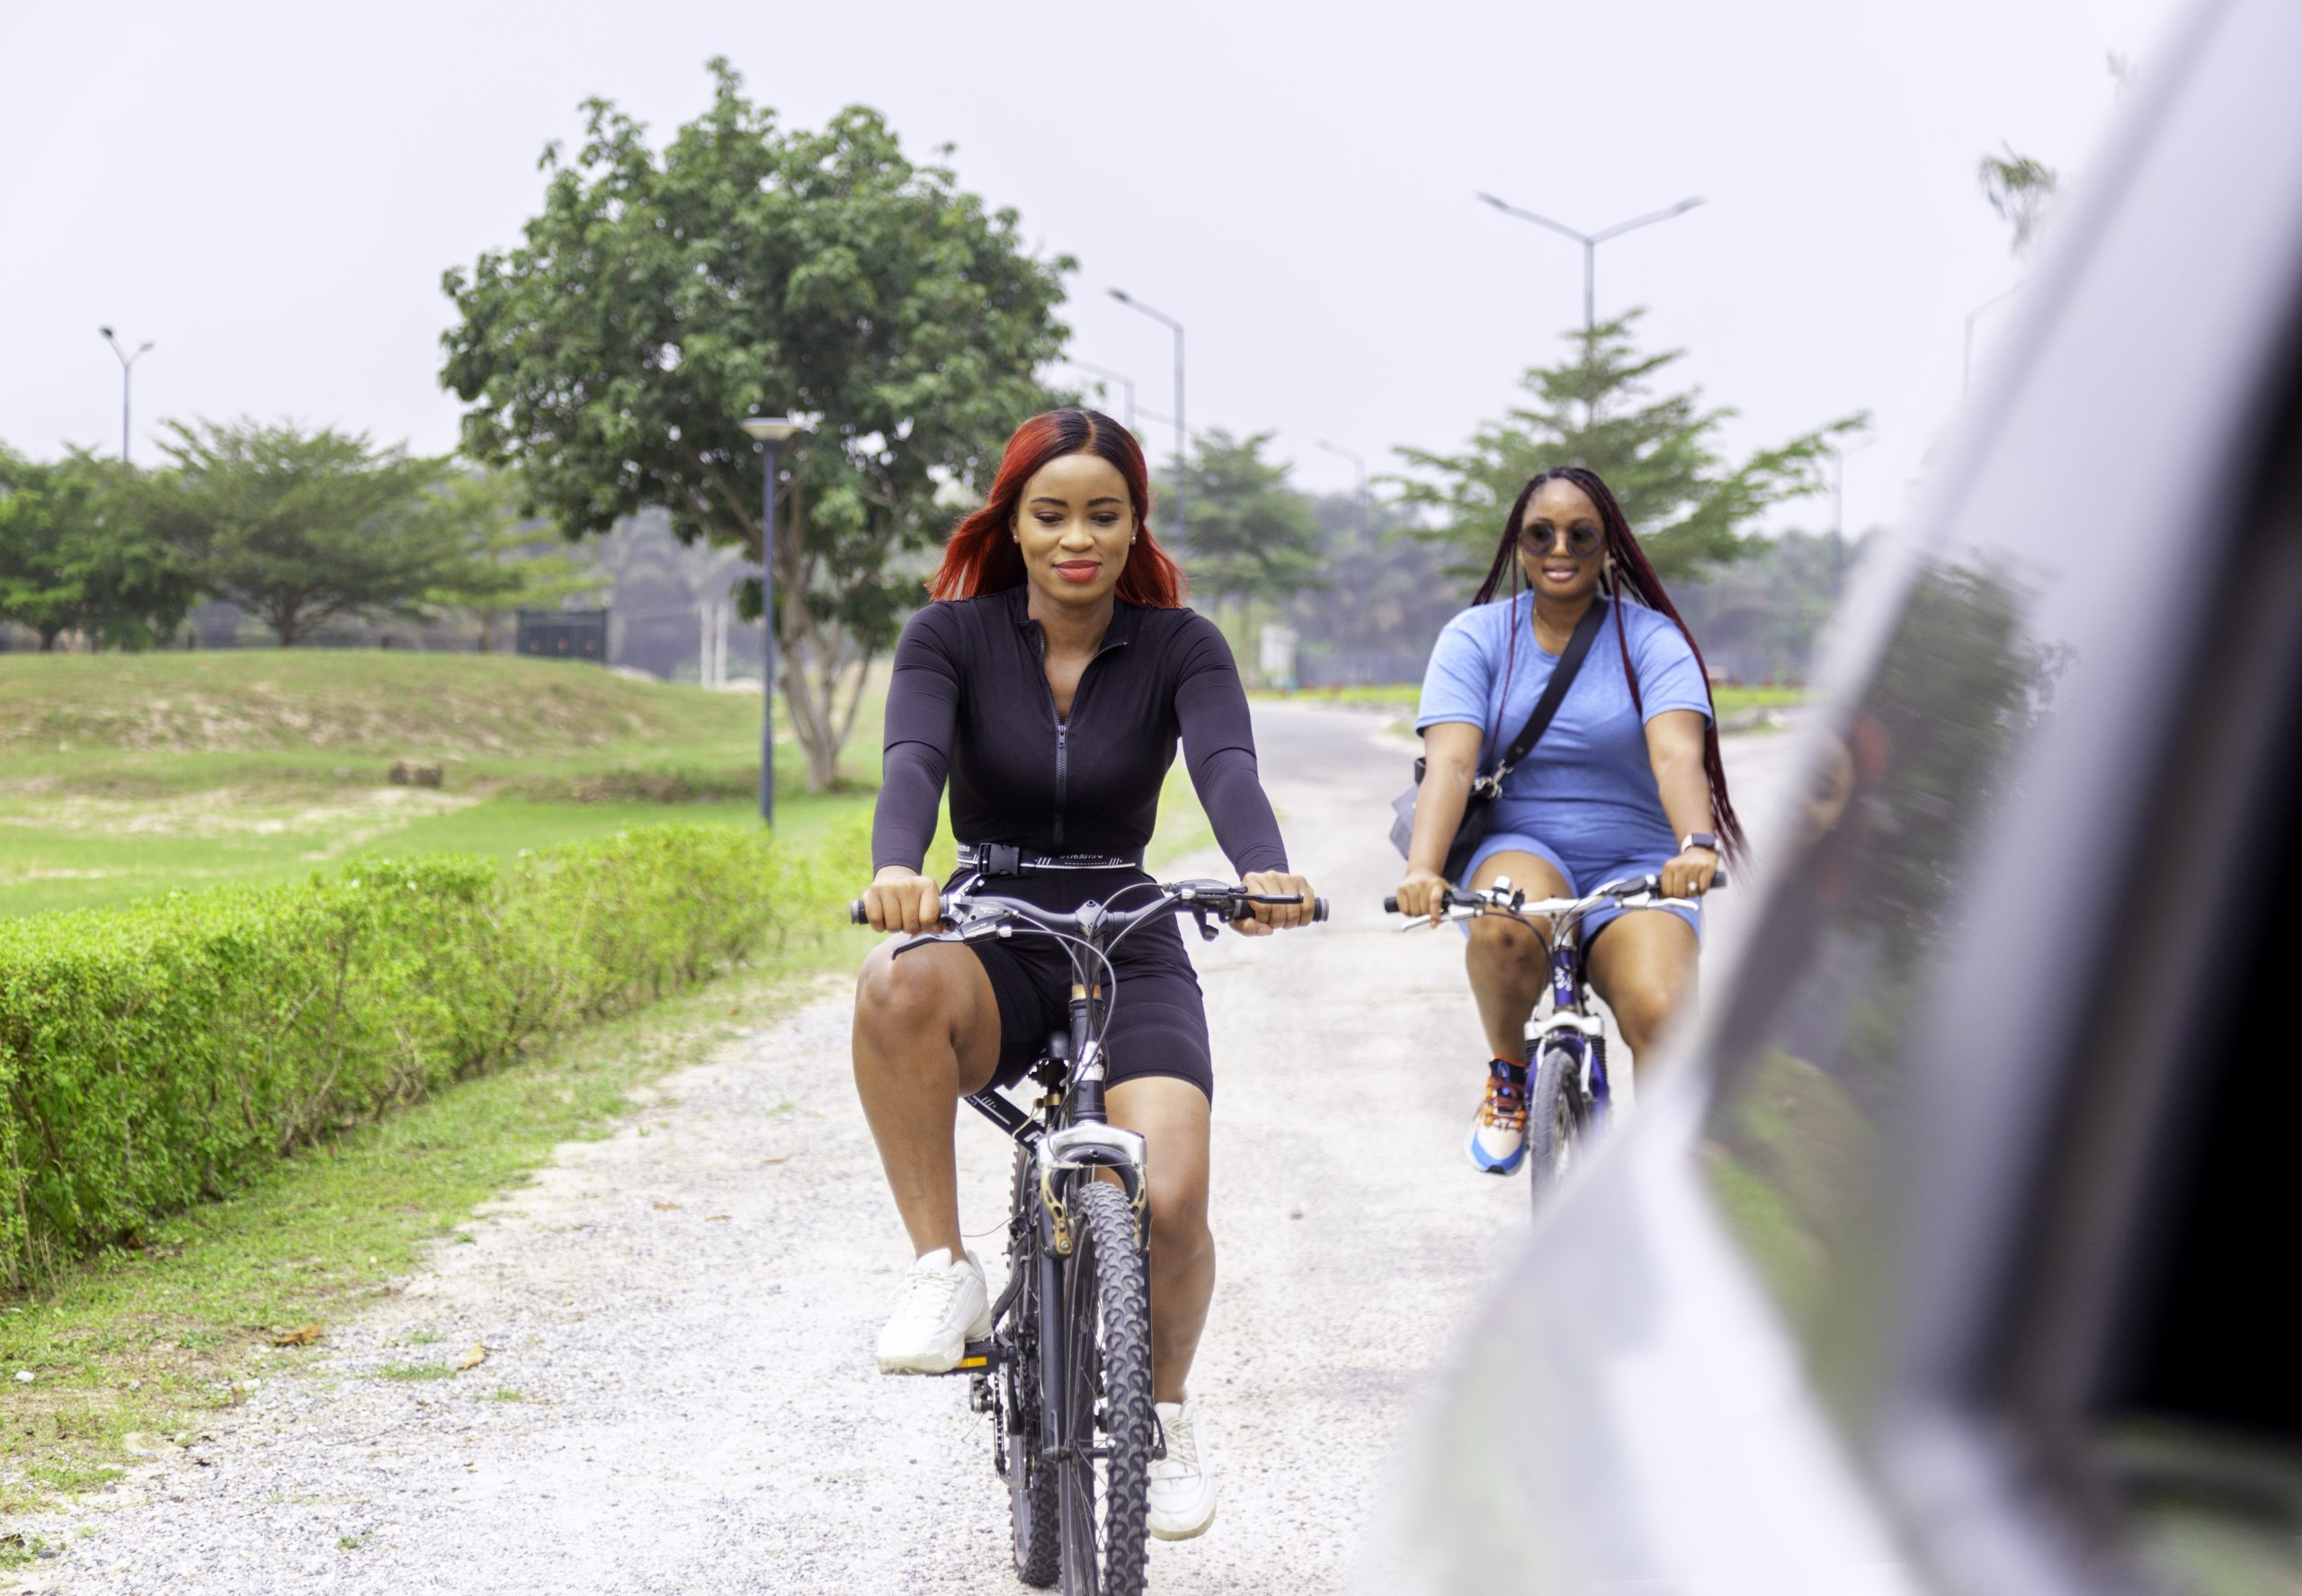 Bicycle tours to enjoy the natural environment in Lakowe Lakes